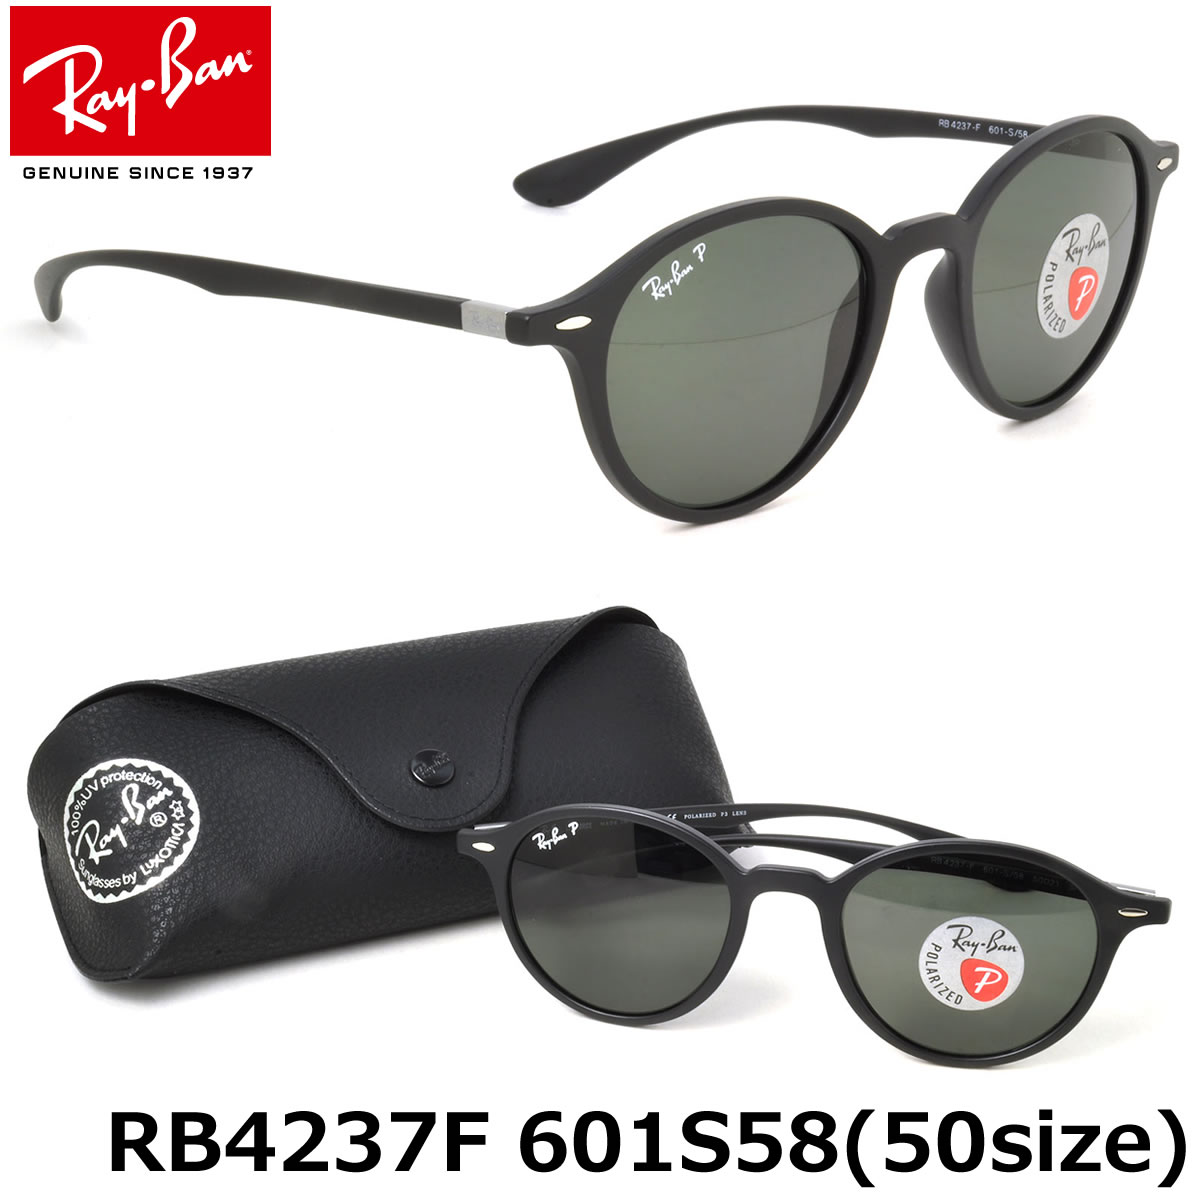 a695ee06f39 It is multiplied by the ray-ban-art and fashion fashion model. This model  is made from thermoplastic materials used in aerospace and medical  technology.